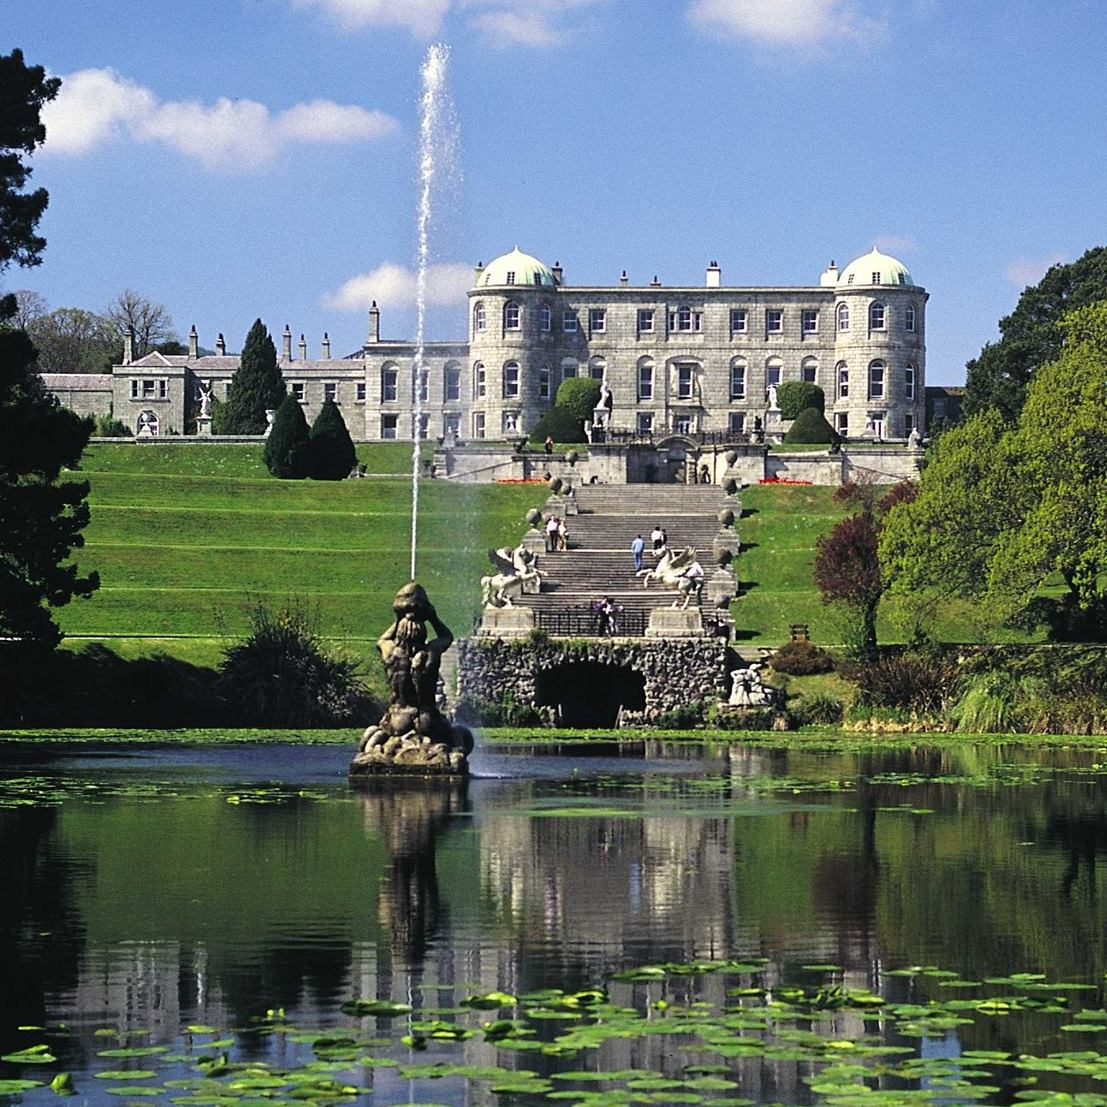 #Ireland 's 'Top Ten #Wedding Venues 2018' : https://t.co/JG8DchqZCQ https://t.co/7Ir2lBzK0o